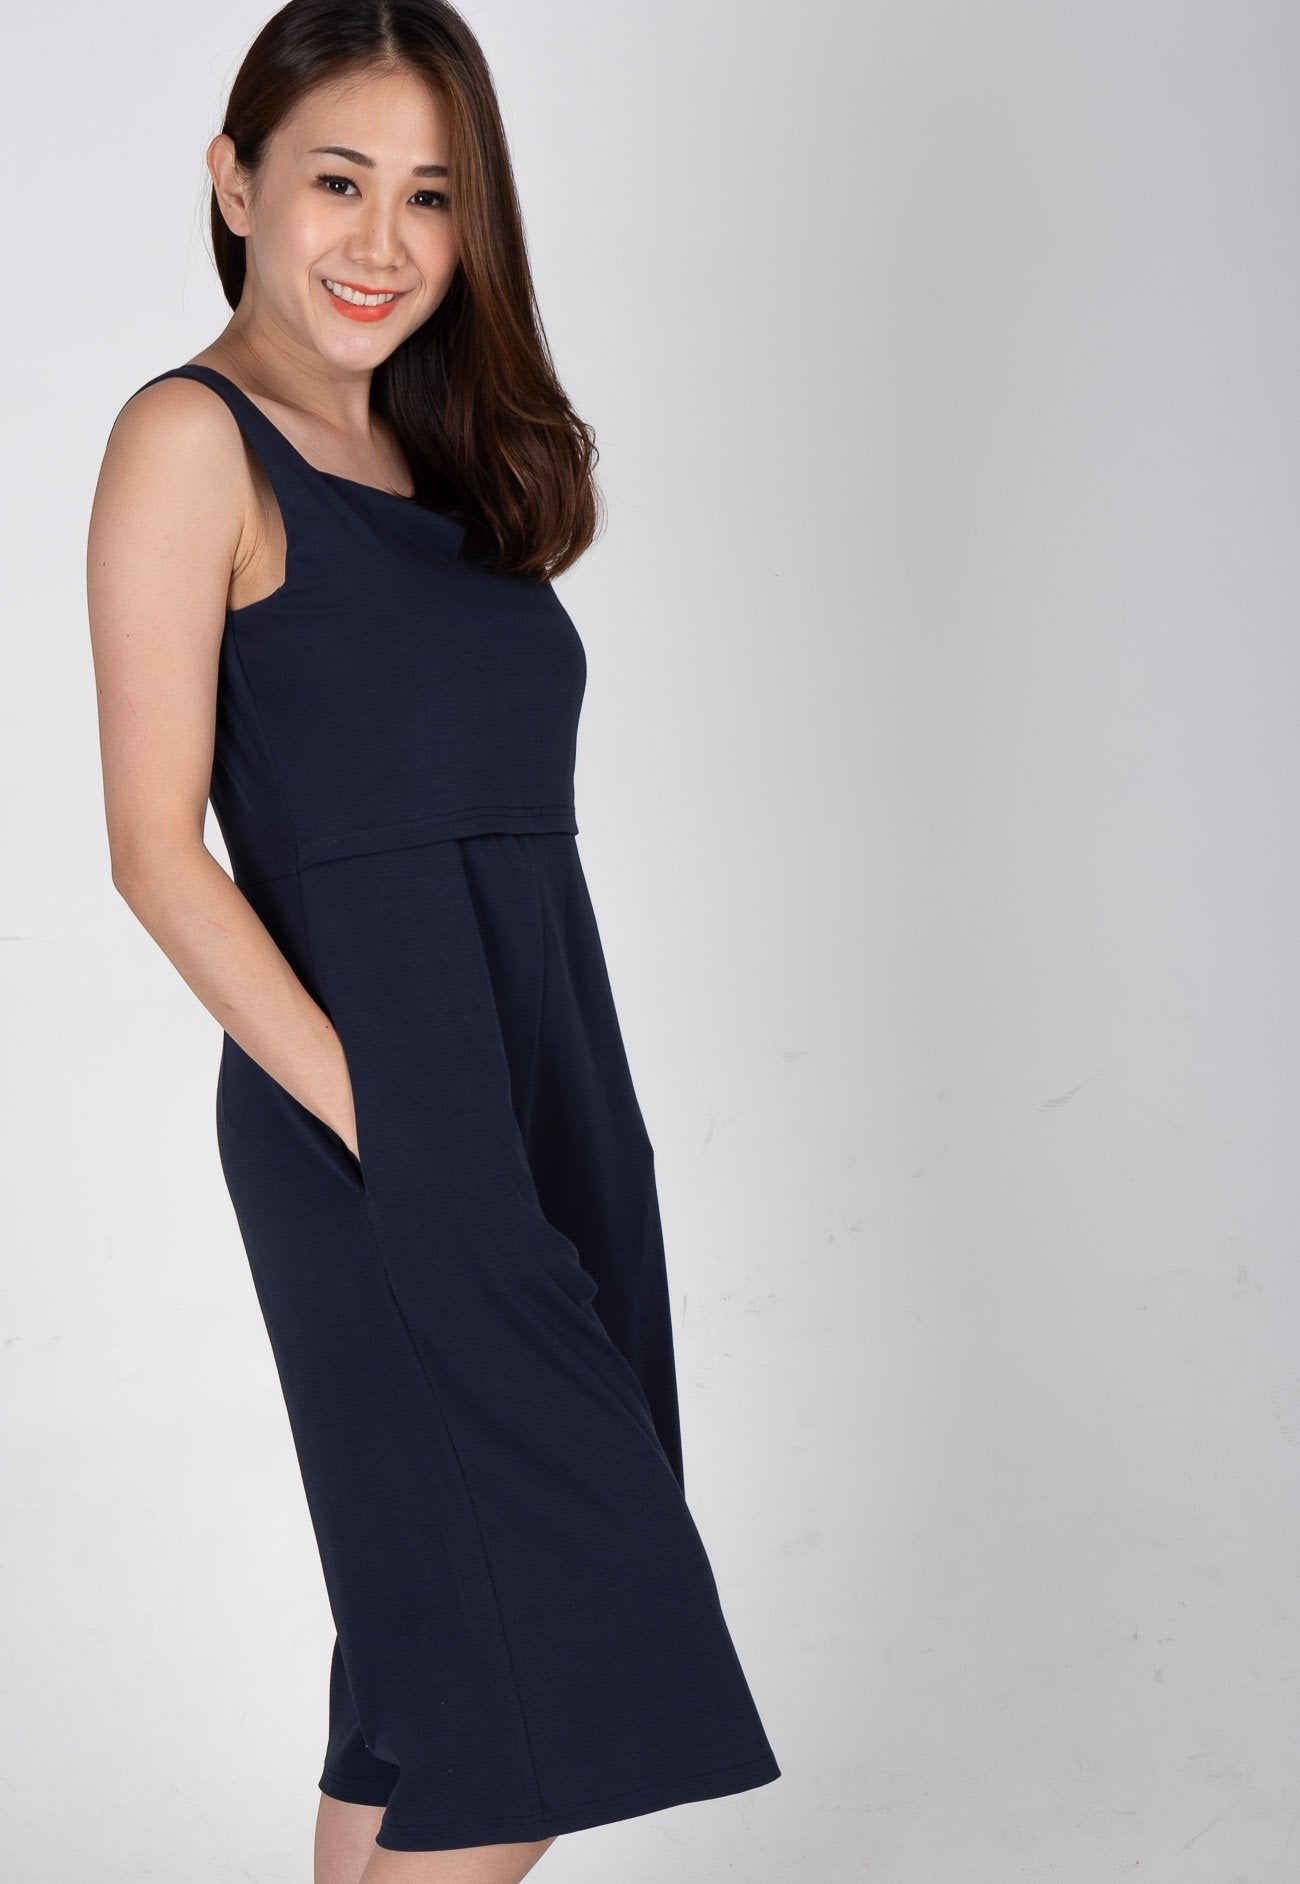 2c2fd8332 ... Smart Casual Nursing Jumpsuit in Navy Nursing Wear Mothercot ...